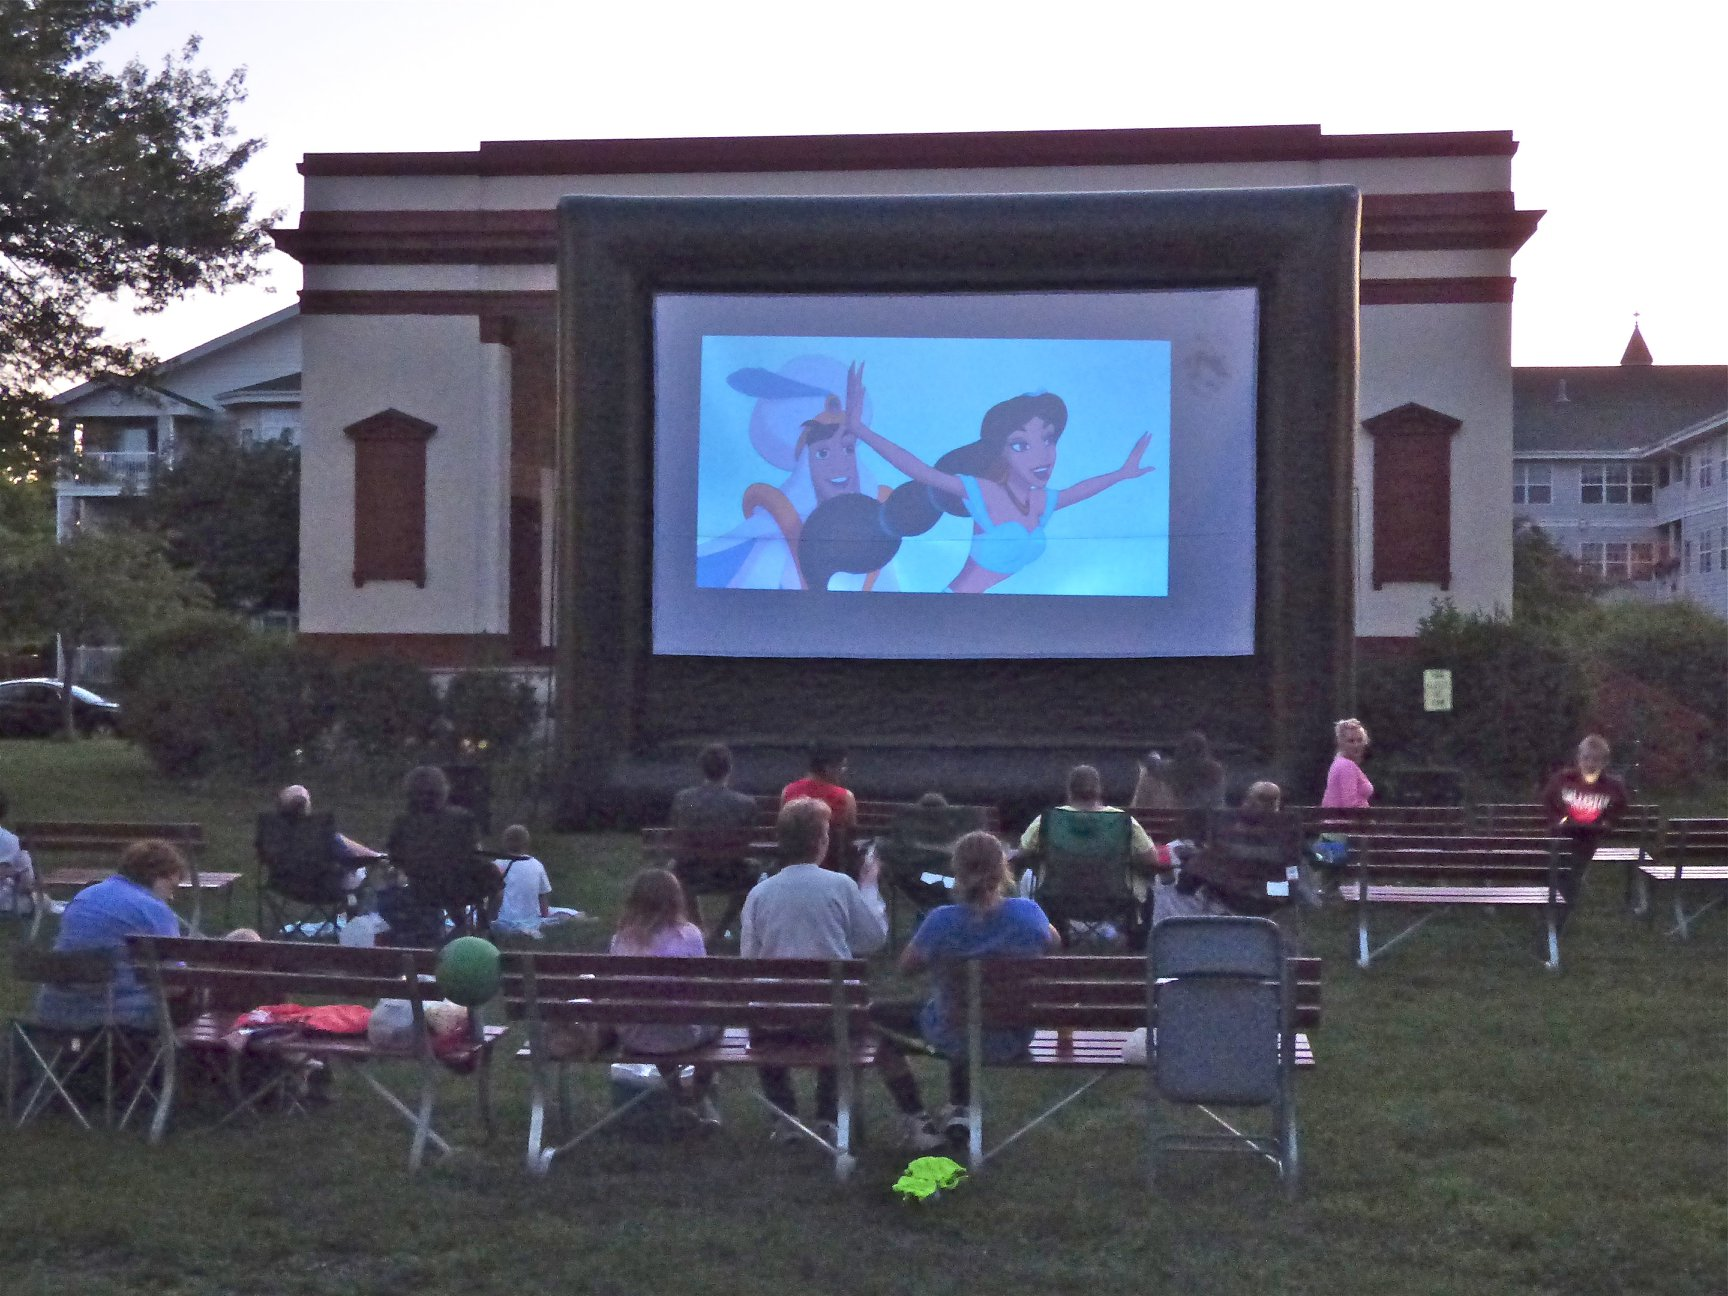 people watching Aladdin in park on large movie screen